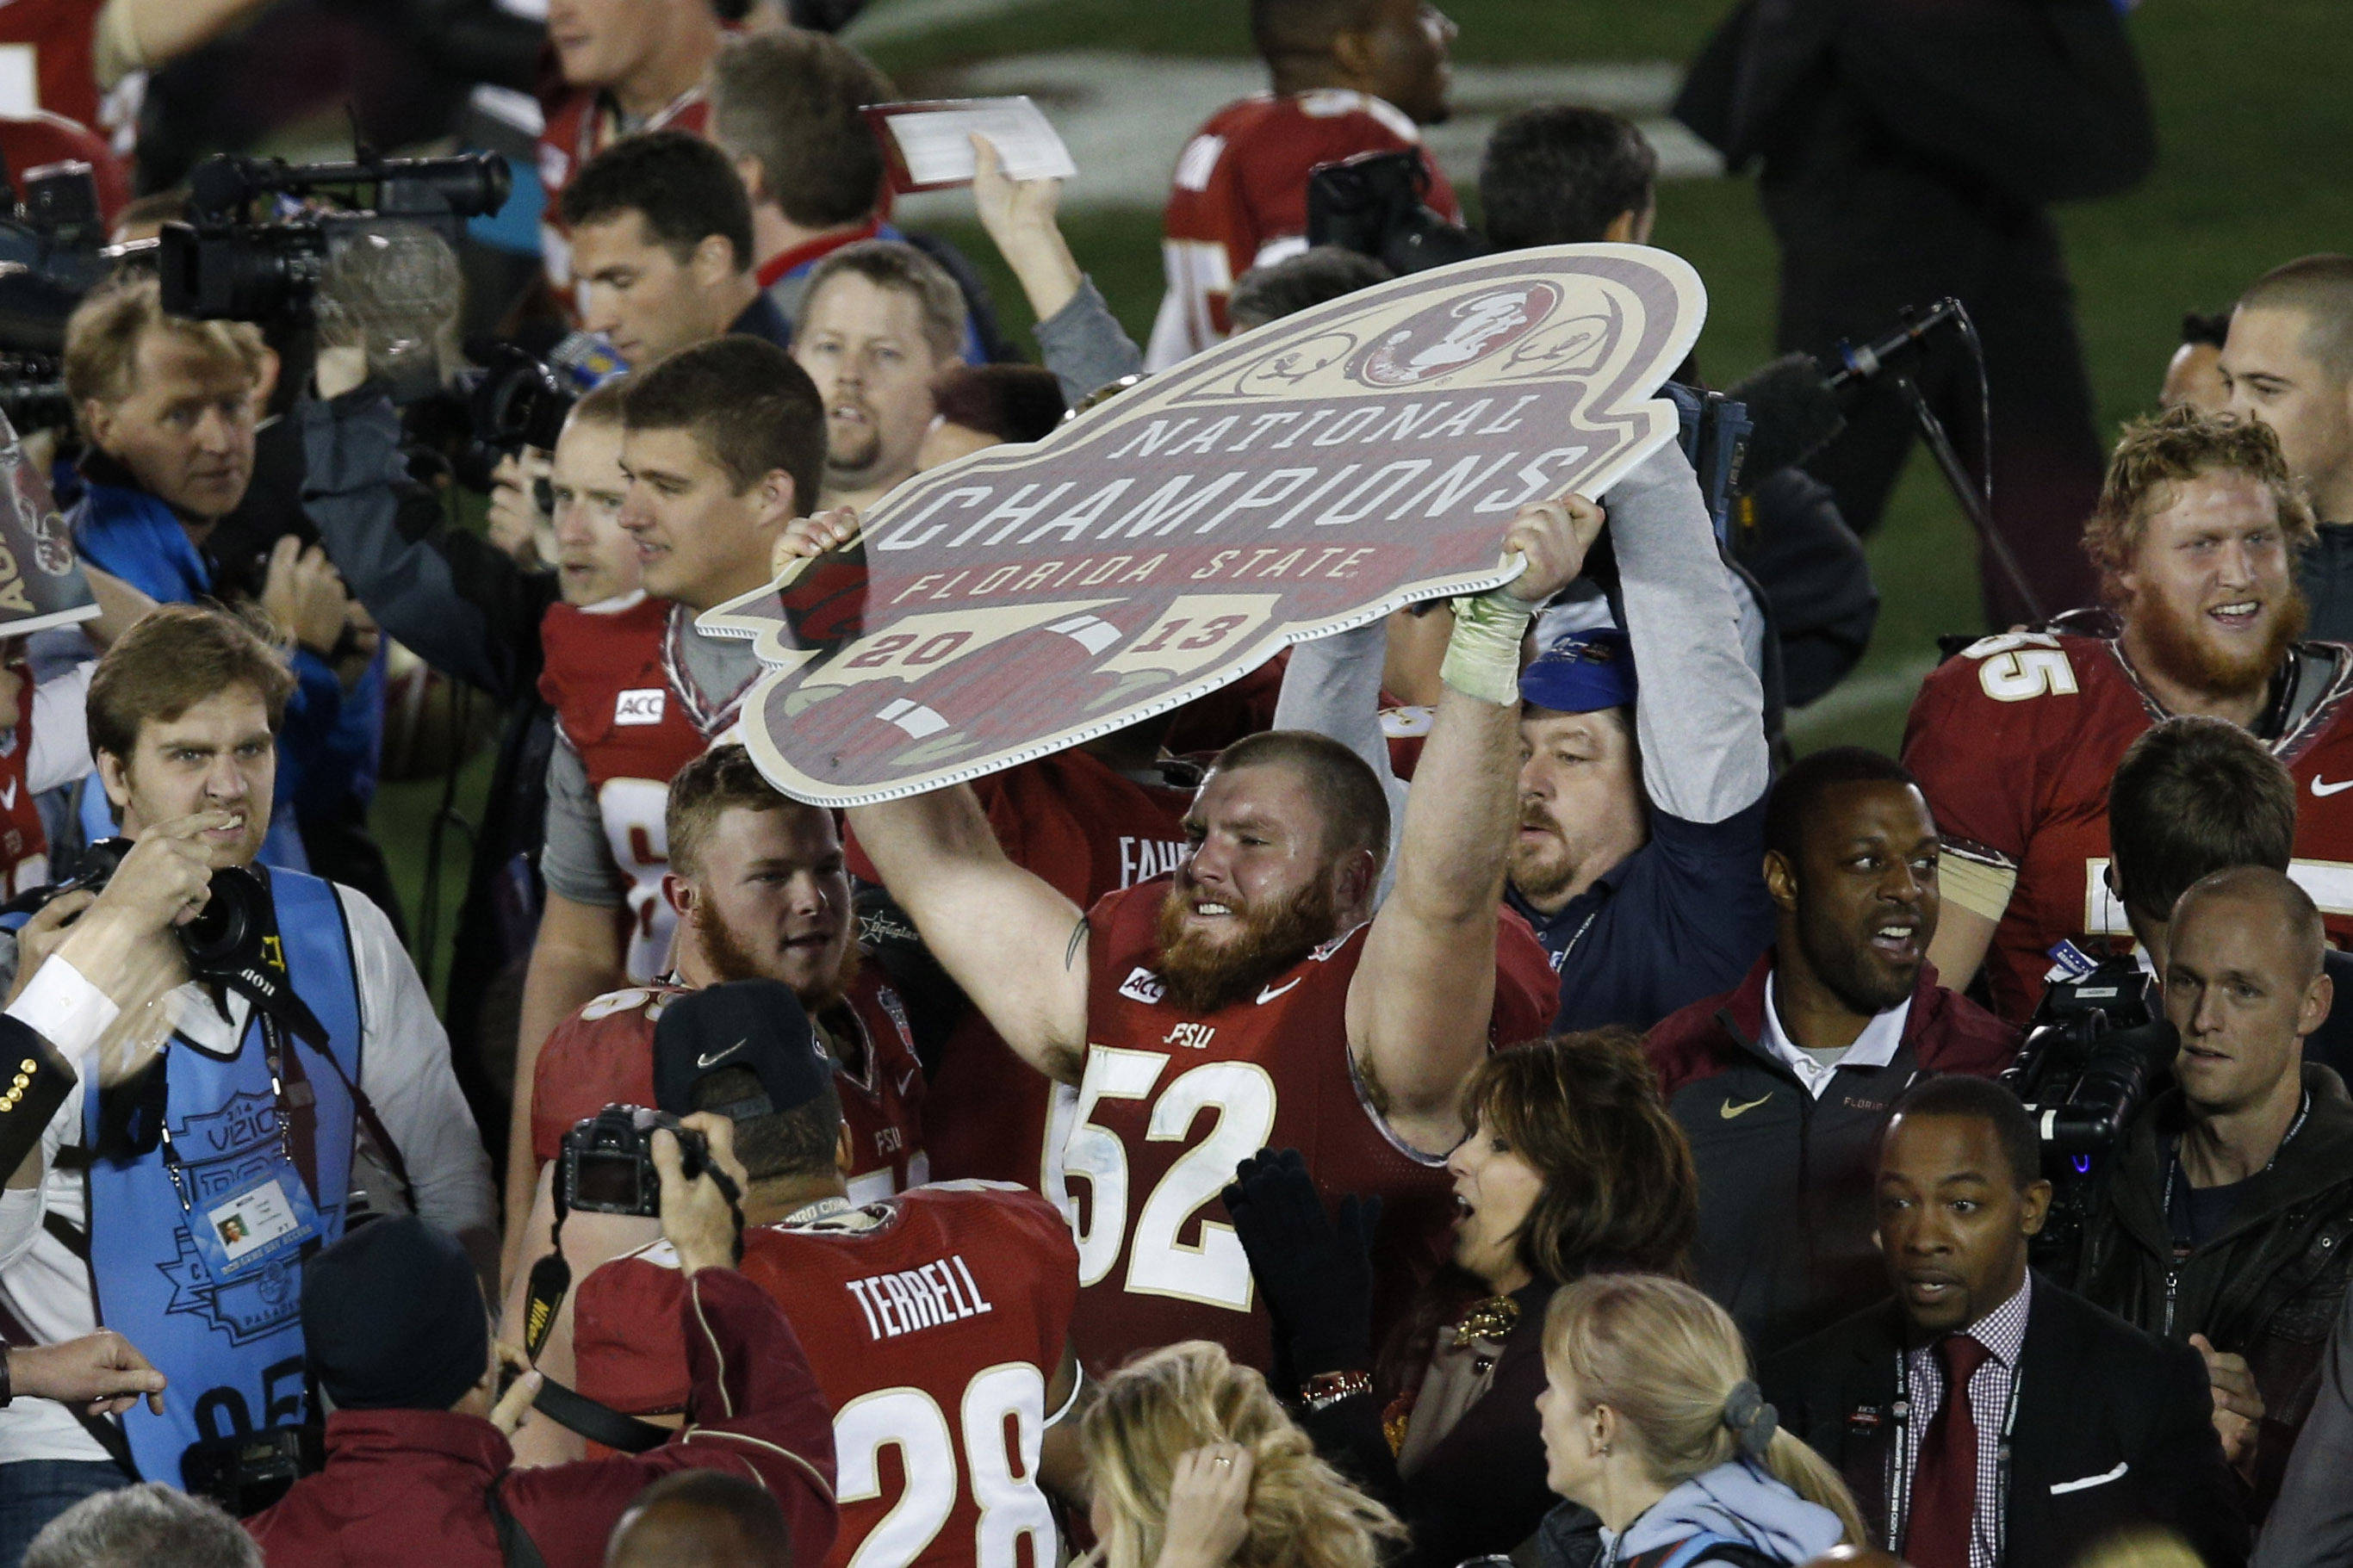 Jan 6, 2014; Pasadena, CA, USA; Florida State Seminoles offensive linesman Bryan Stork (52) celebrates after the 2014 BCS National Championship game against the Auburn Tigers at the Rose Bowl.  Mandatory Credit: Kelvin Kuo-USA TODAY Sports